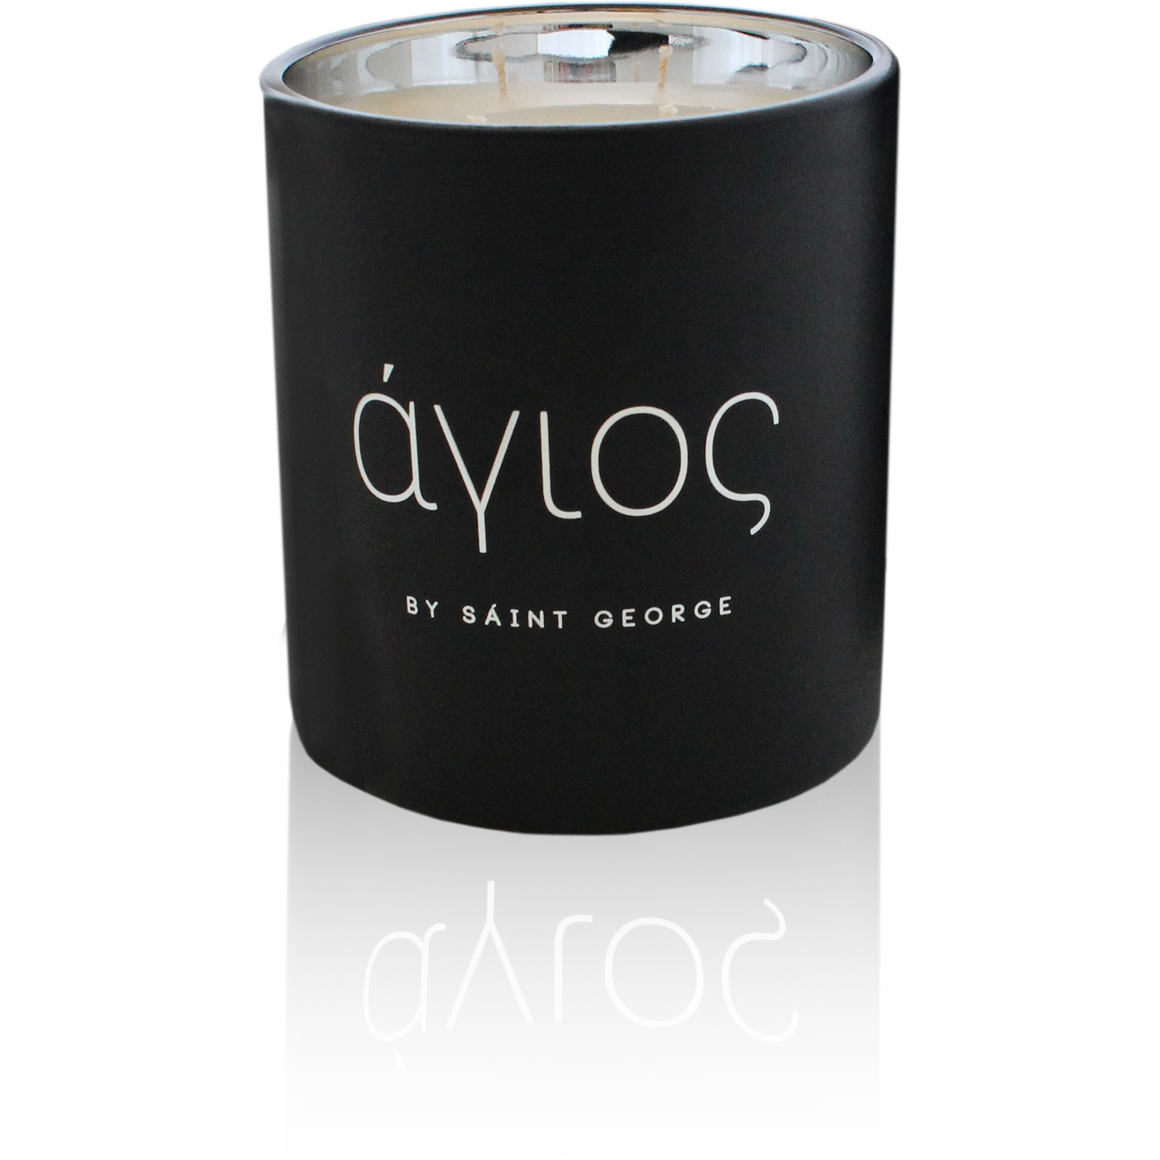 Ayios by Saint George Candle